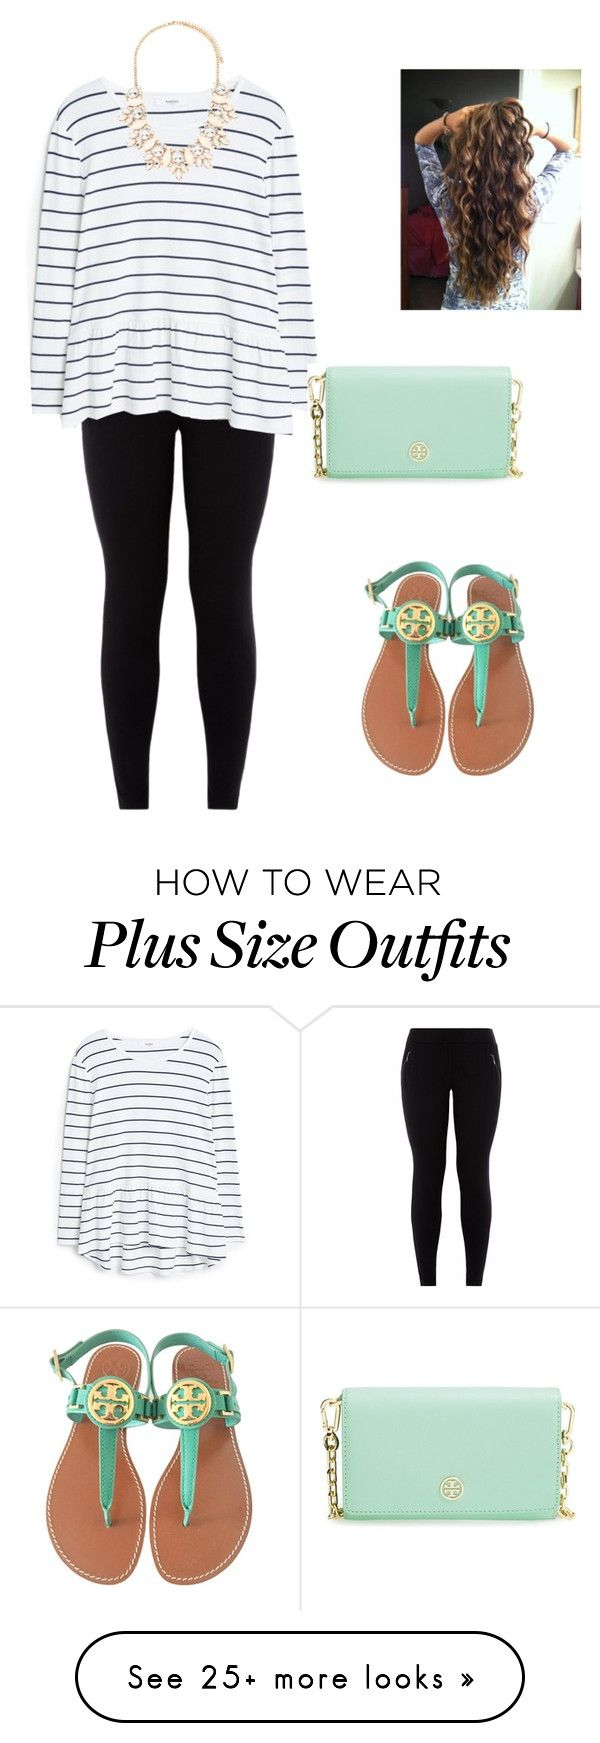 """Read D"" by jackelinhernandez on Polyvore featuring MANGO, Tory Burch and Forever 21"